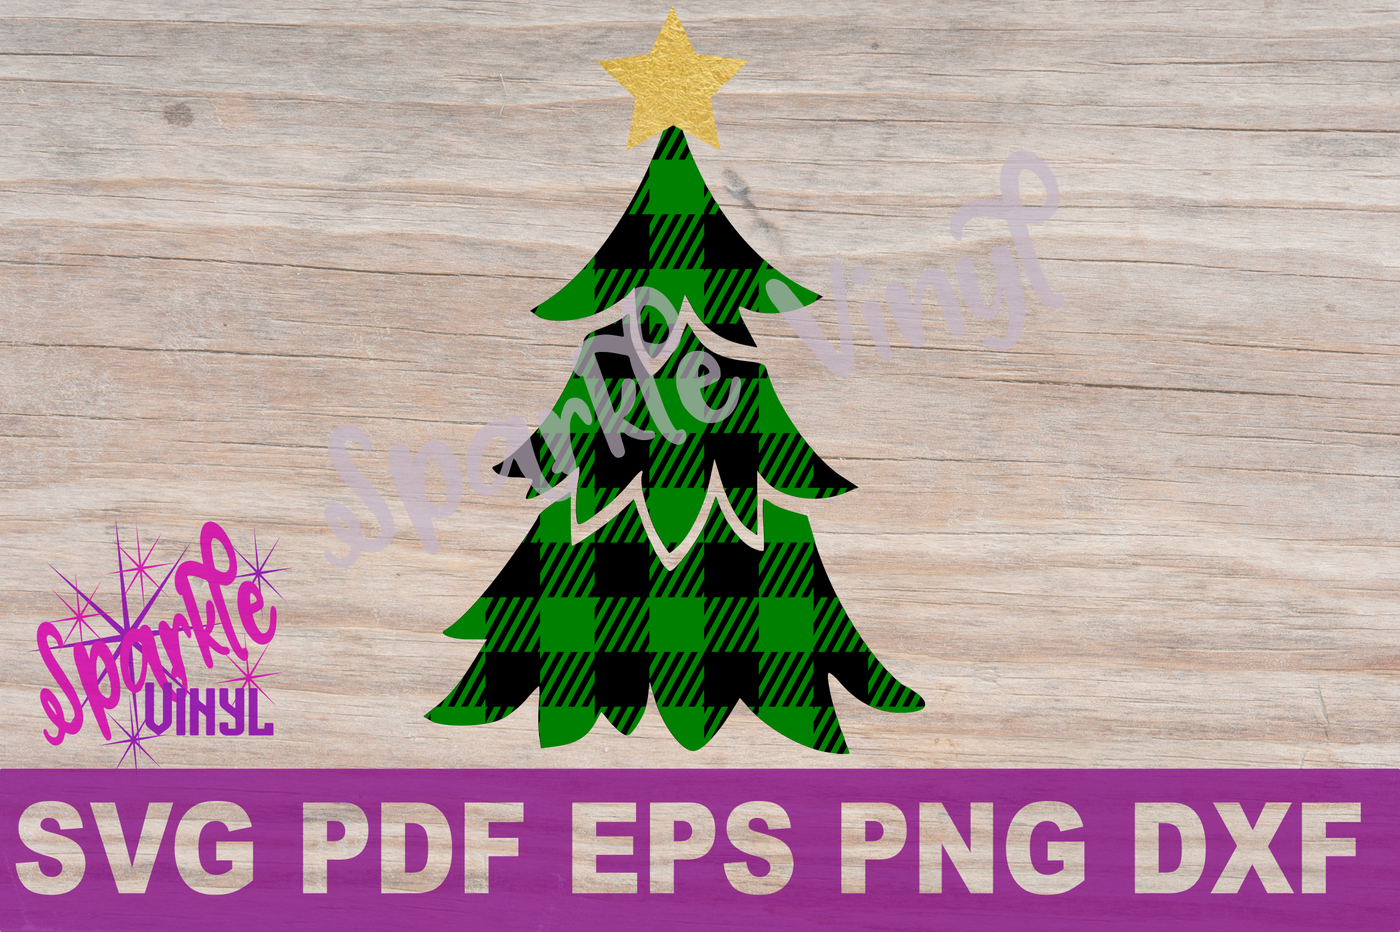 Svg Buffalo Plaid Christmas Tree With Star Shirt Sign Stencil Printable Svg Files For Cricut And Silhouette Png Pdf Dxf Eps Christmas Design By Sparkle Vinyl Designs Thehungryjpeg Com